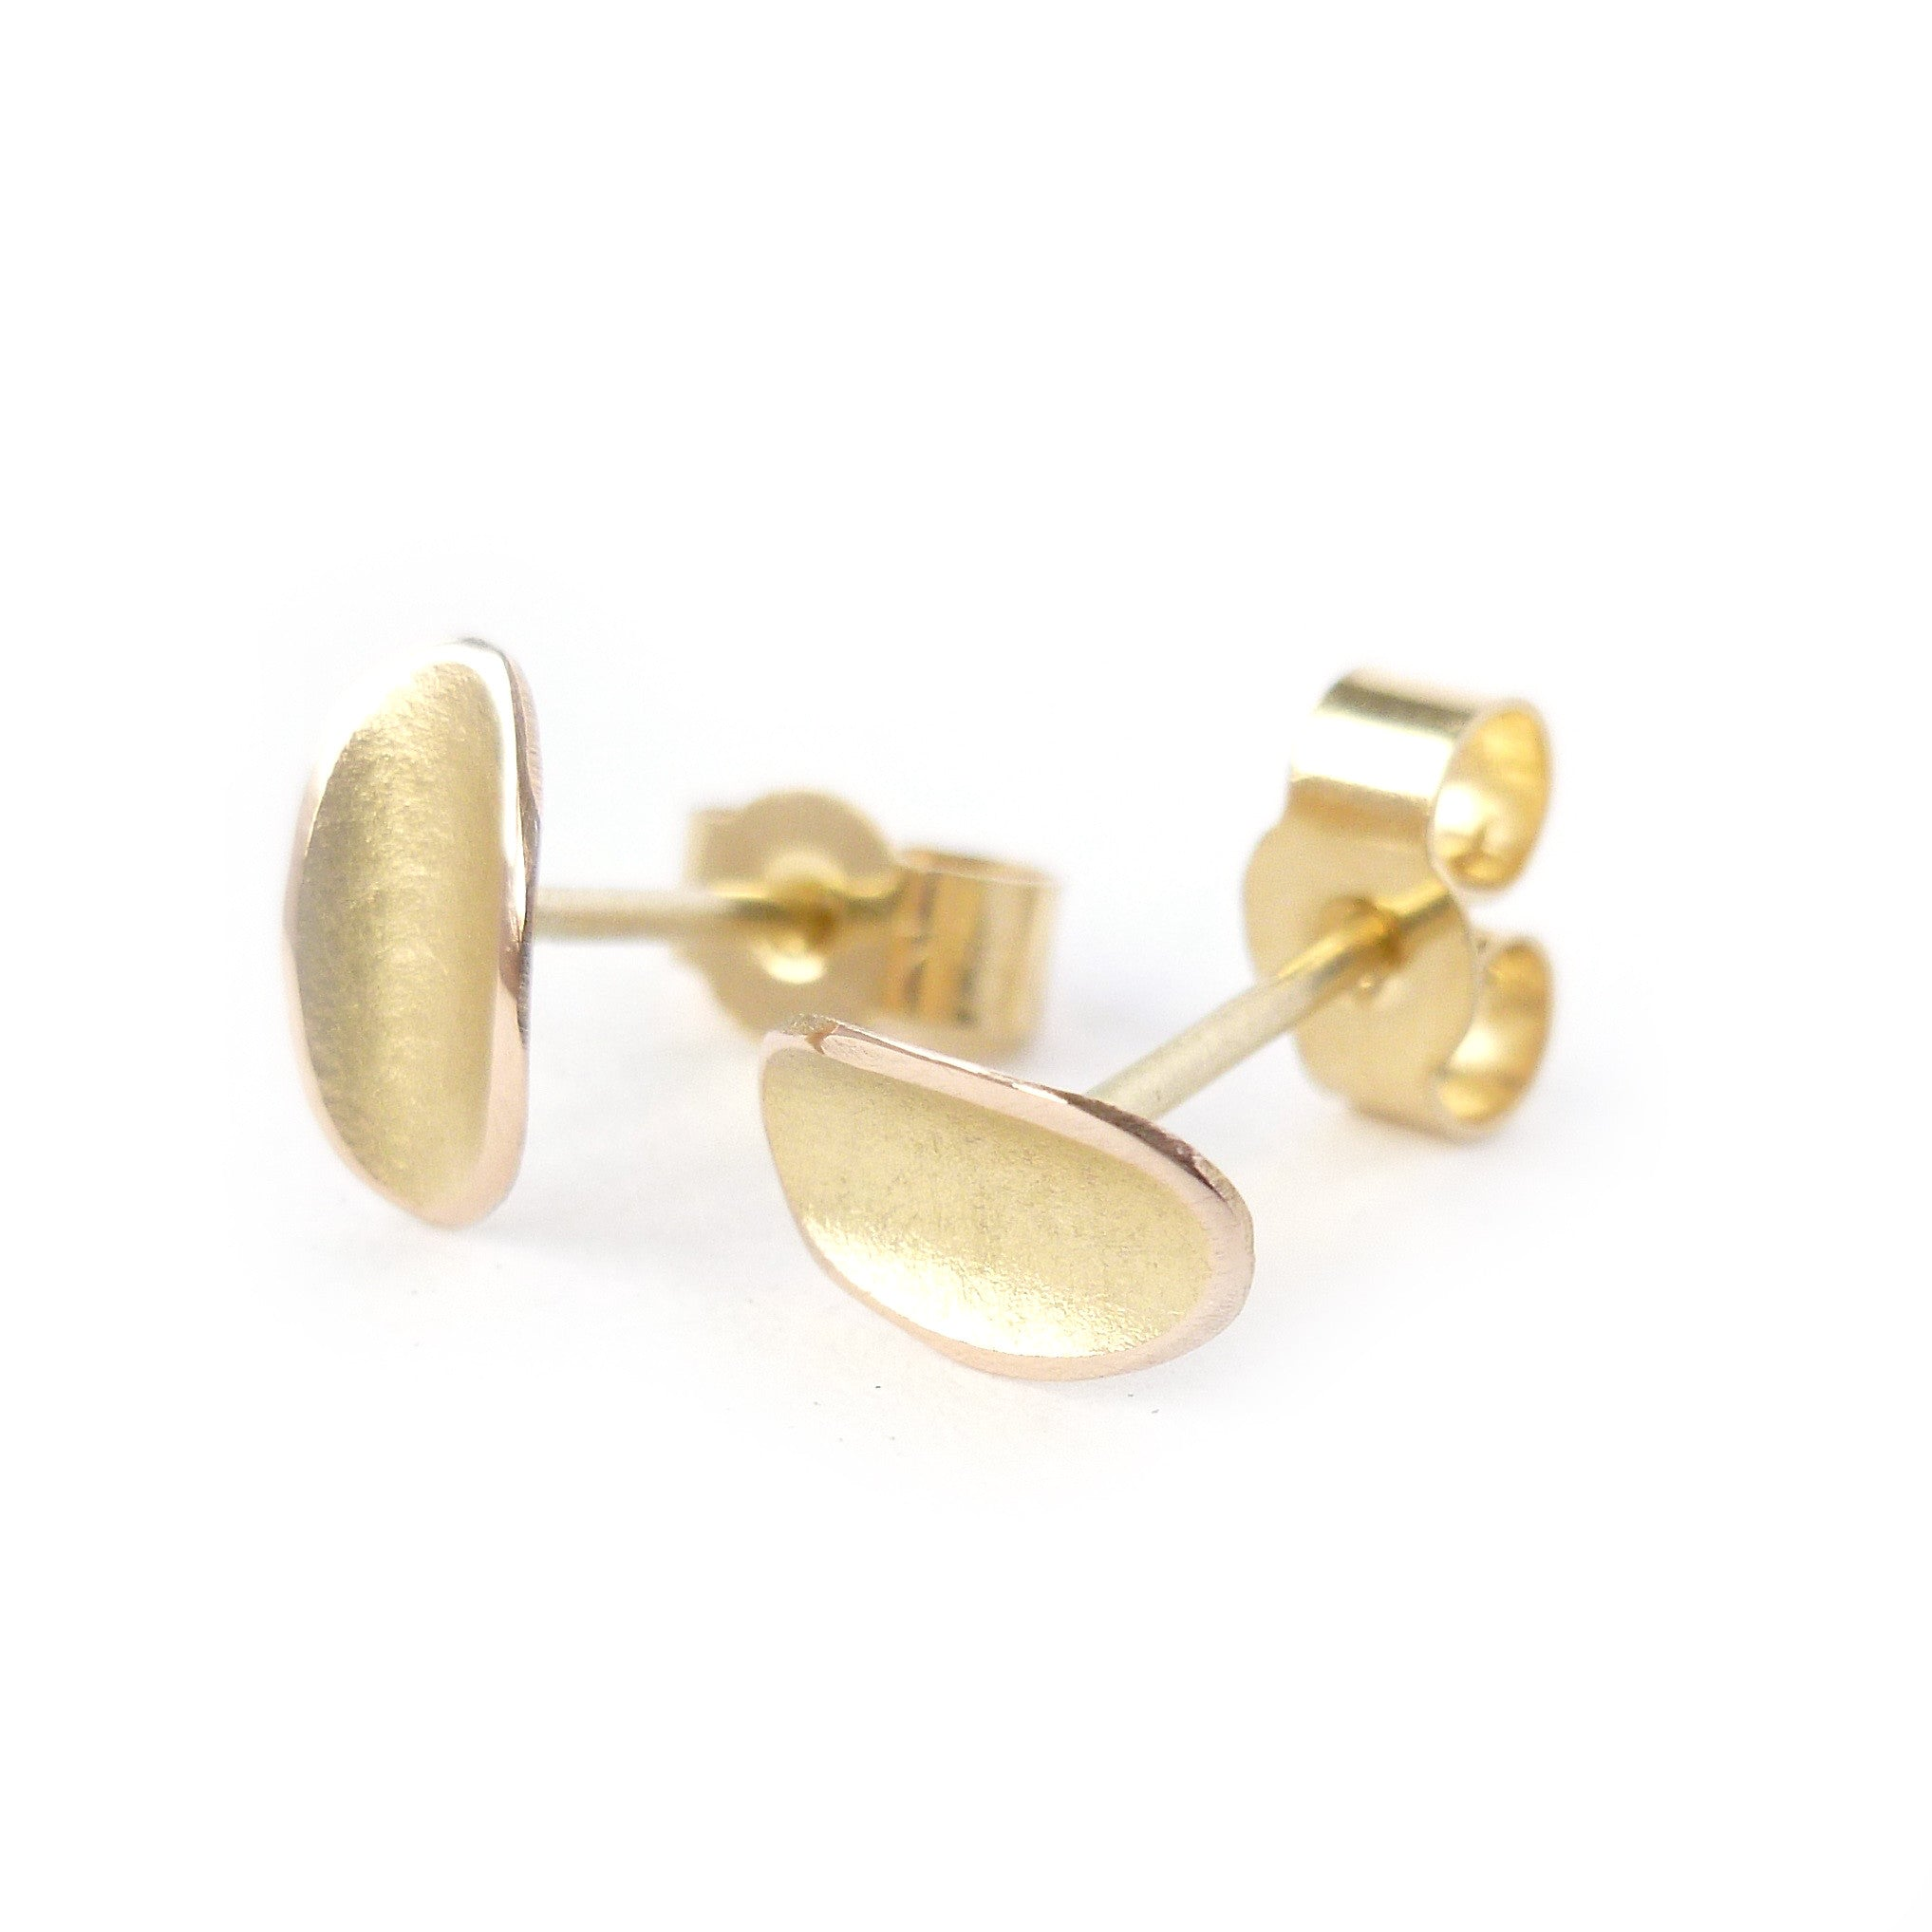 522b295a7 simple, small, discreet modern gold stud earrings with a unique touch.  Handmade by